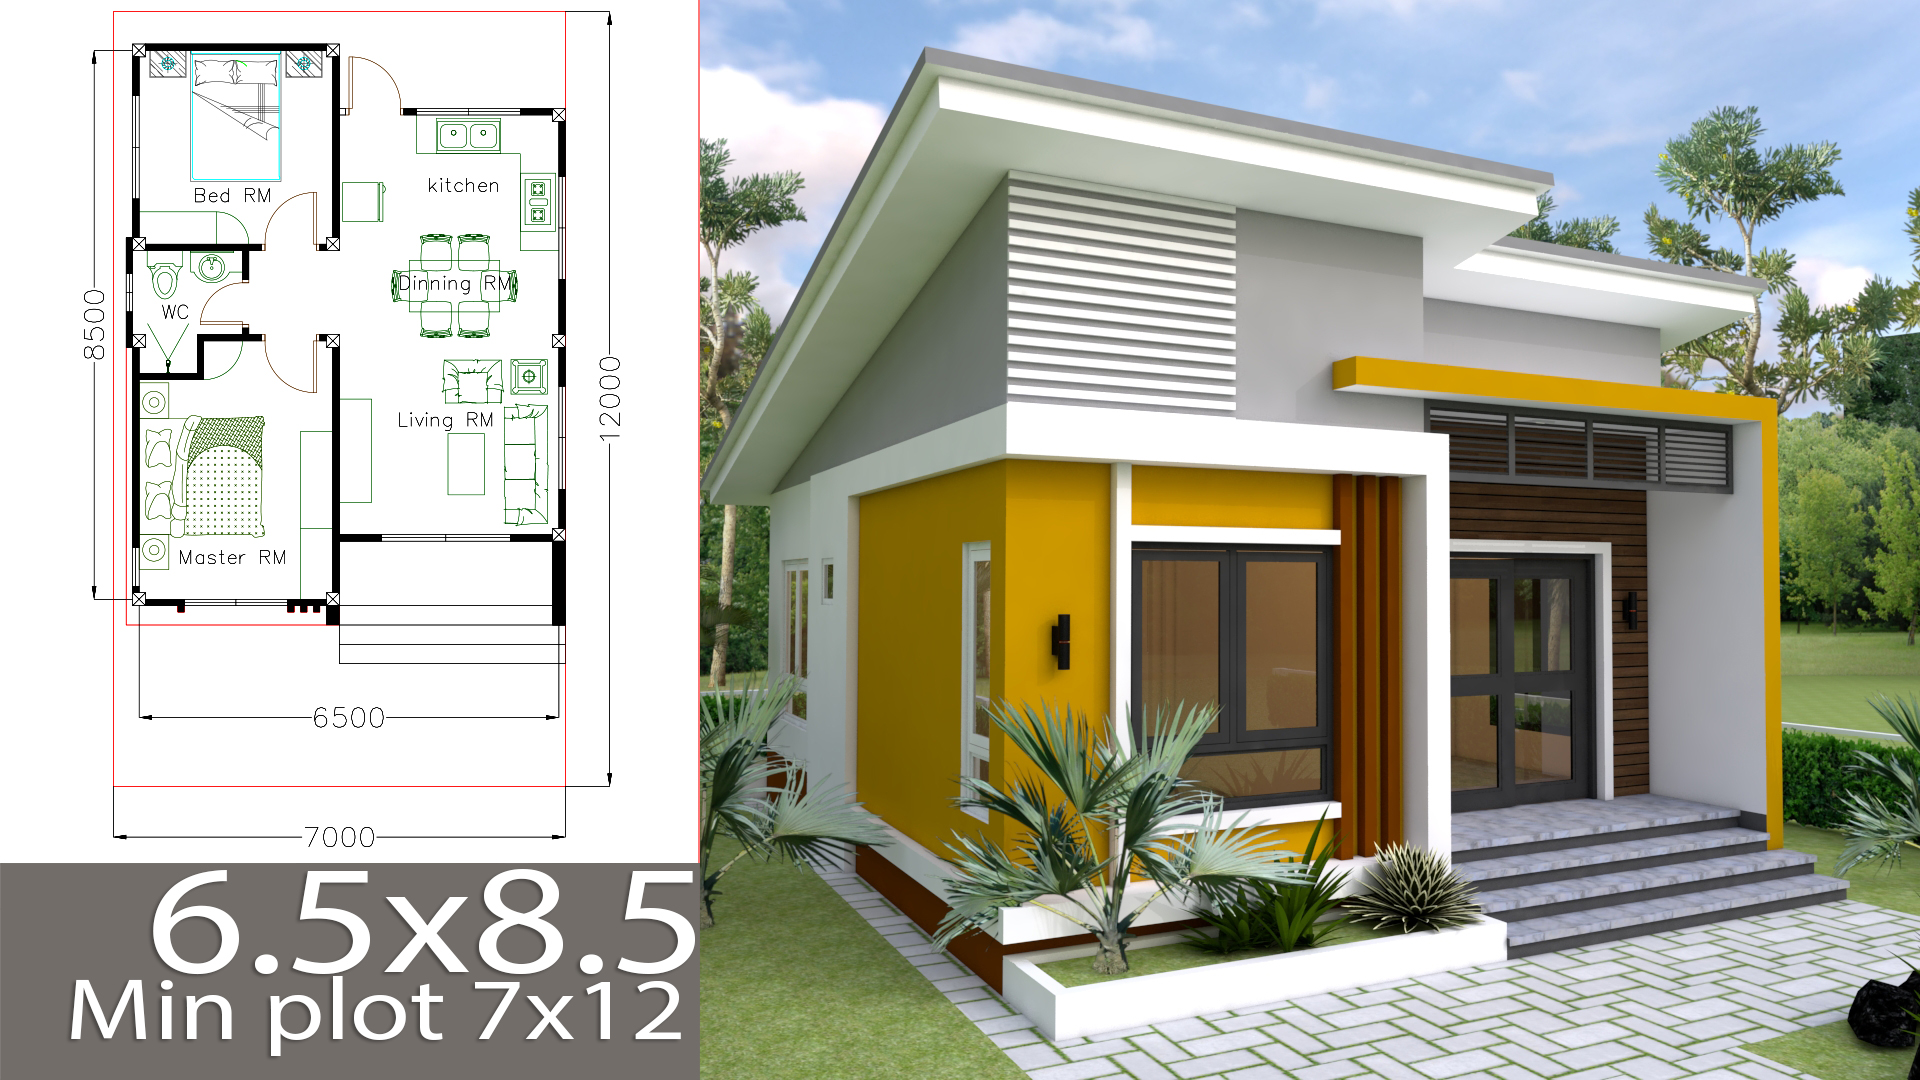 Small Home design Plan 6.5x8.5m with 2 Bedrooms - Samphoas.Com